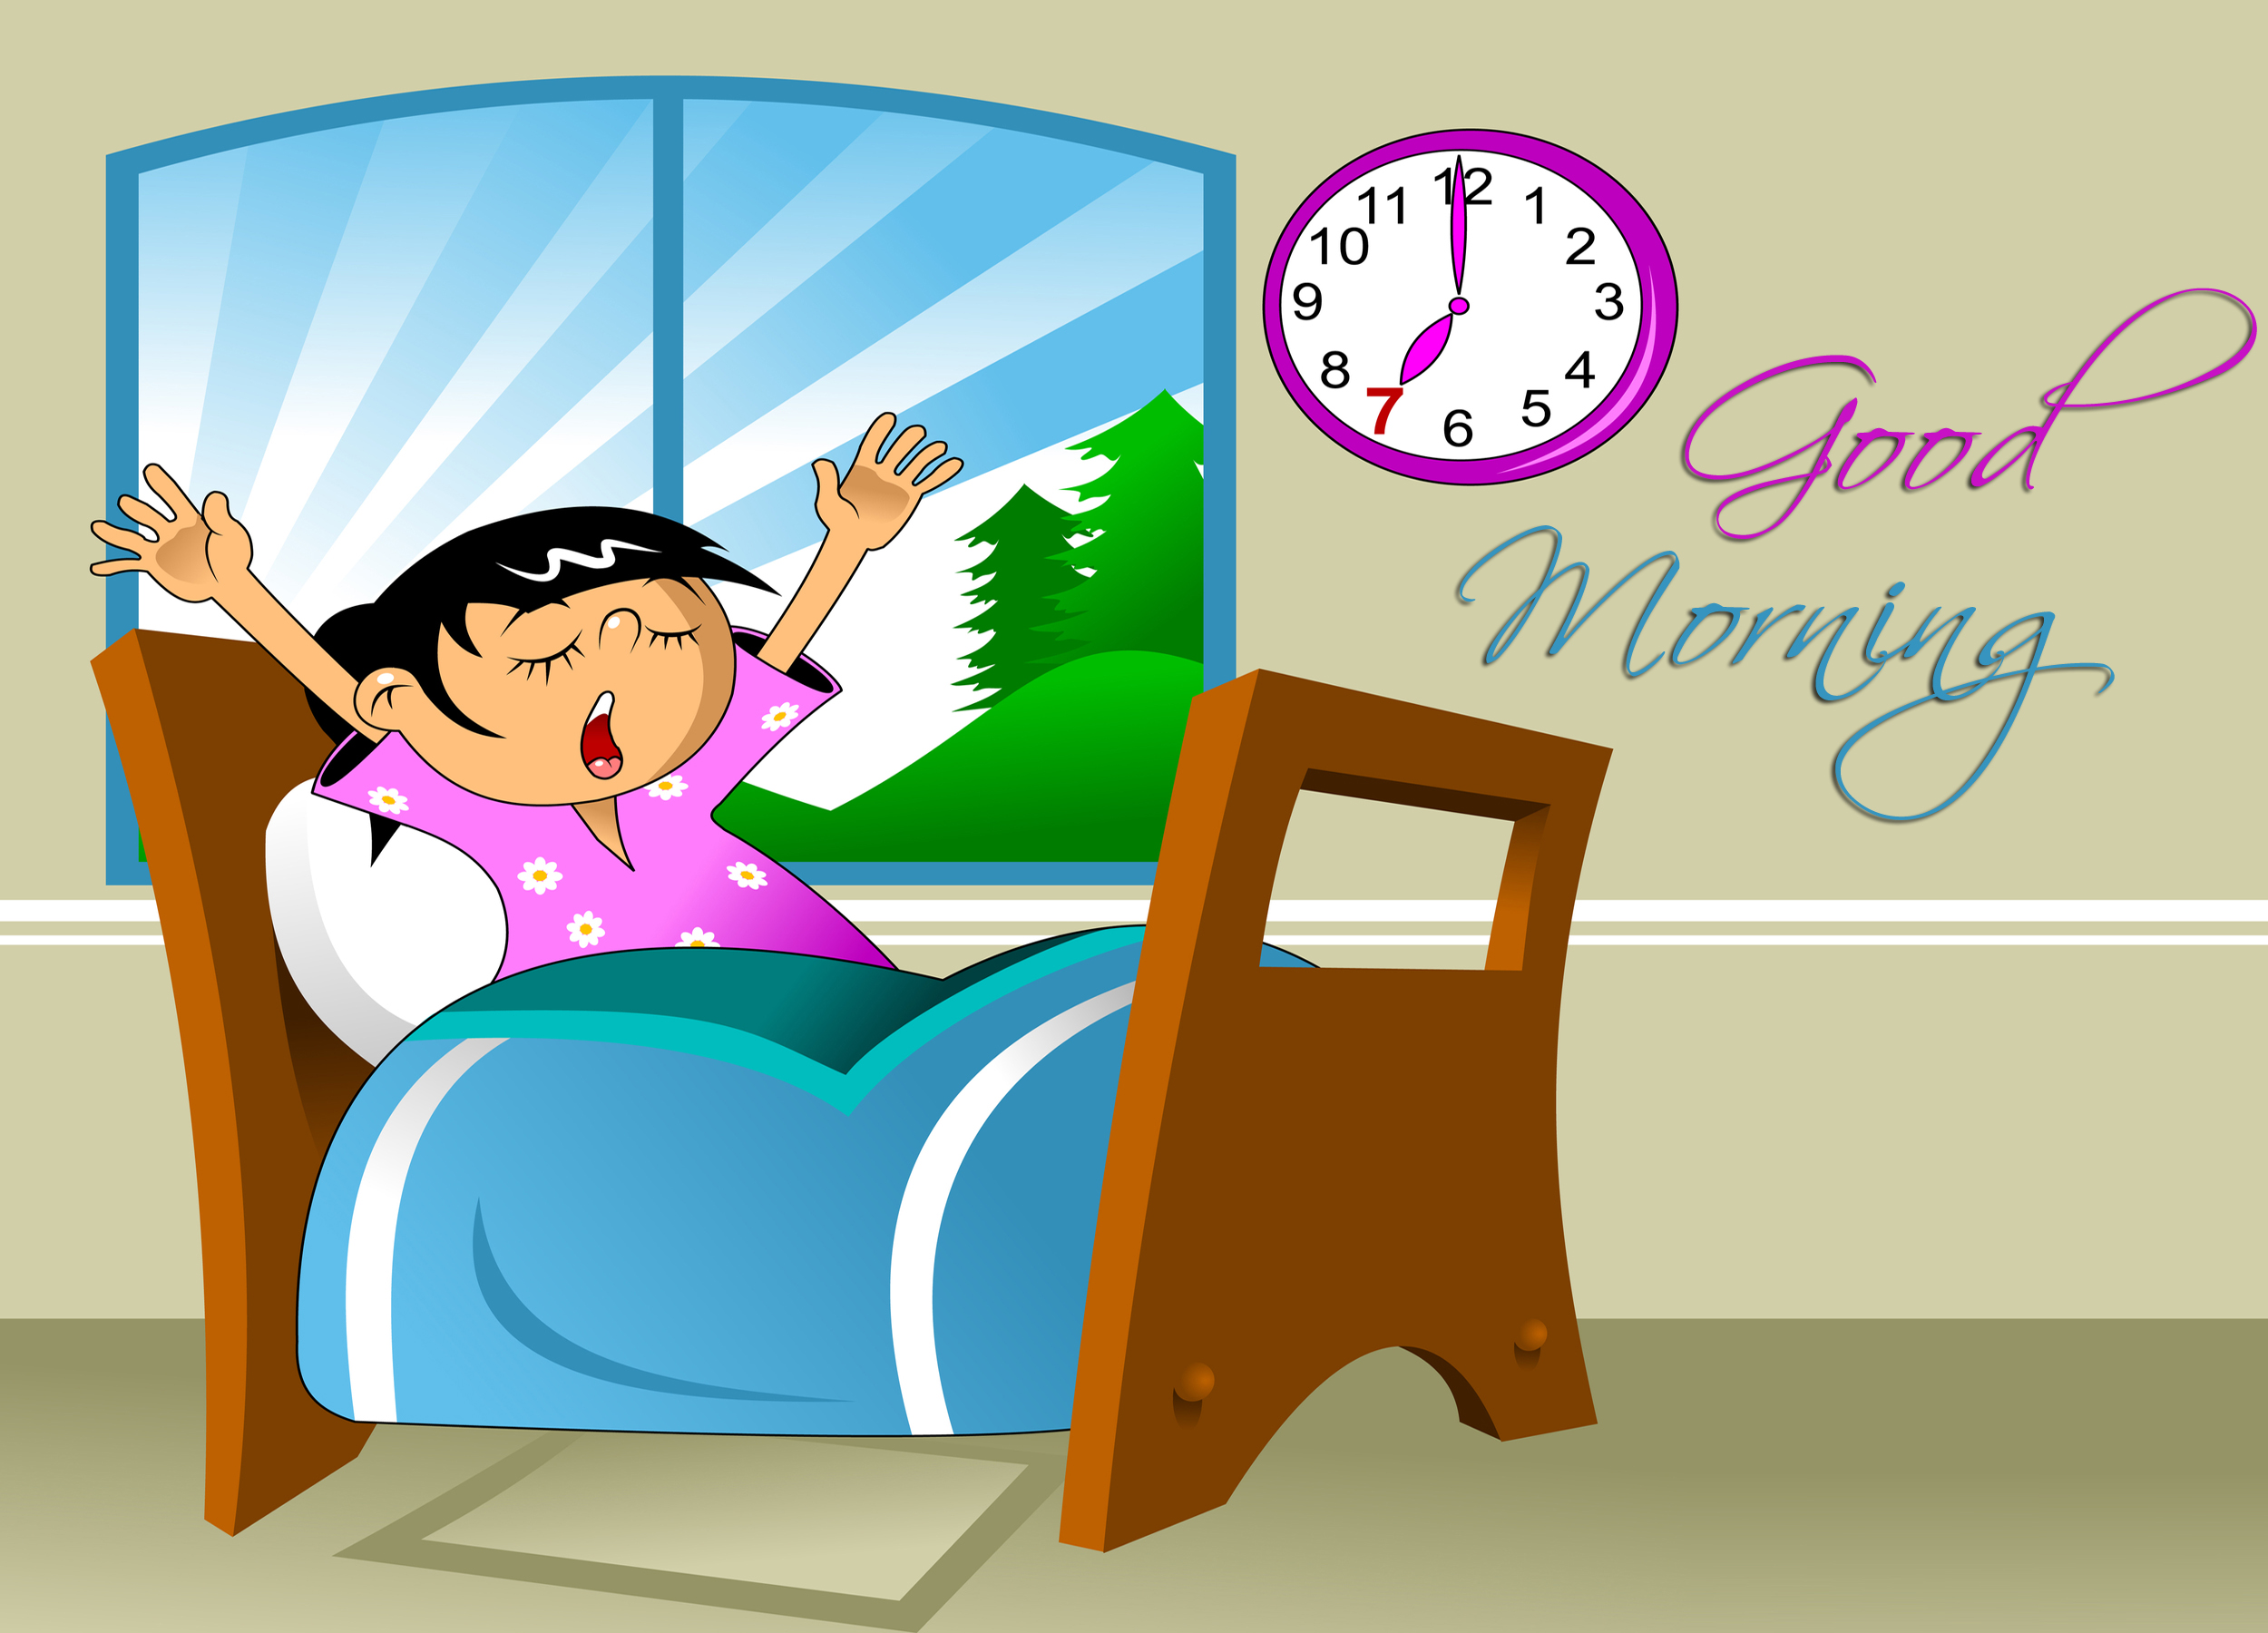 Best Good Morning Messages Quotes sms wishes